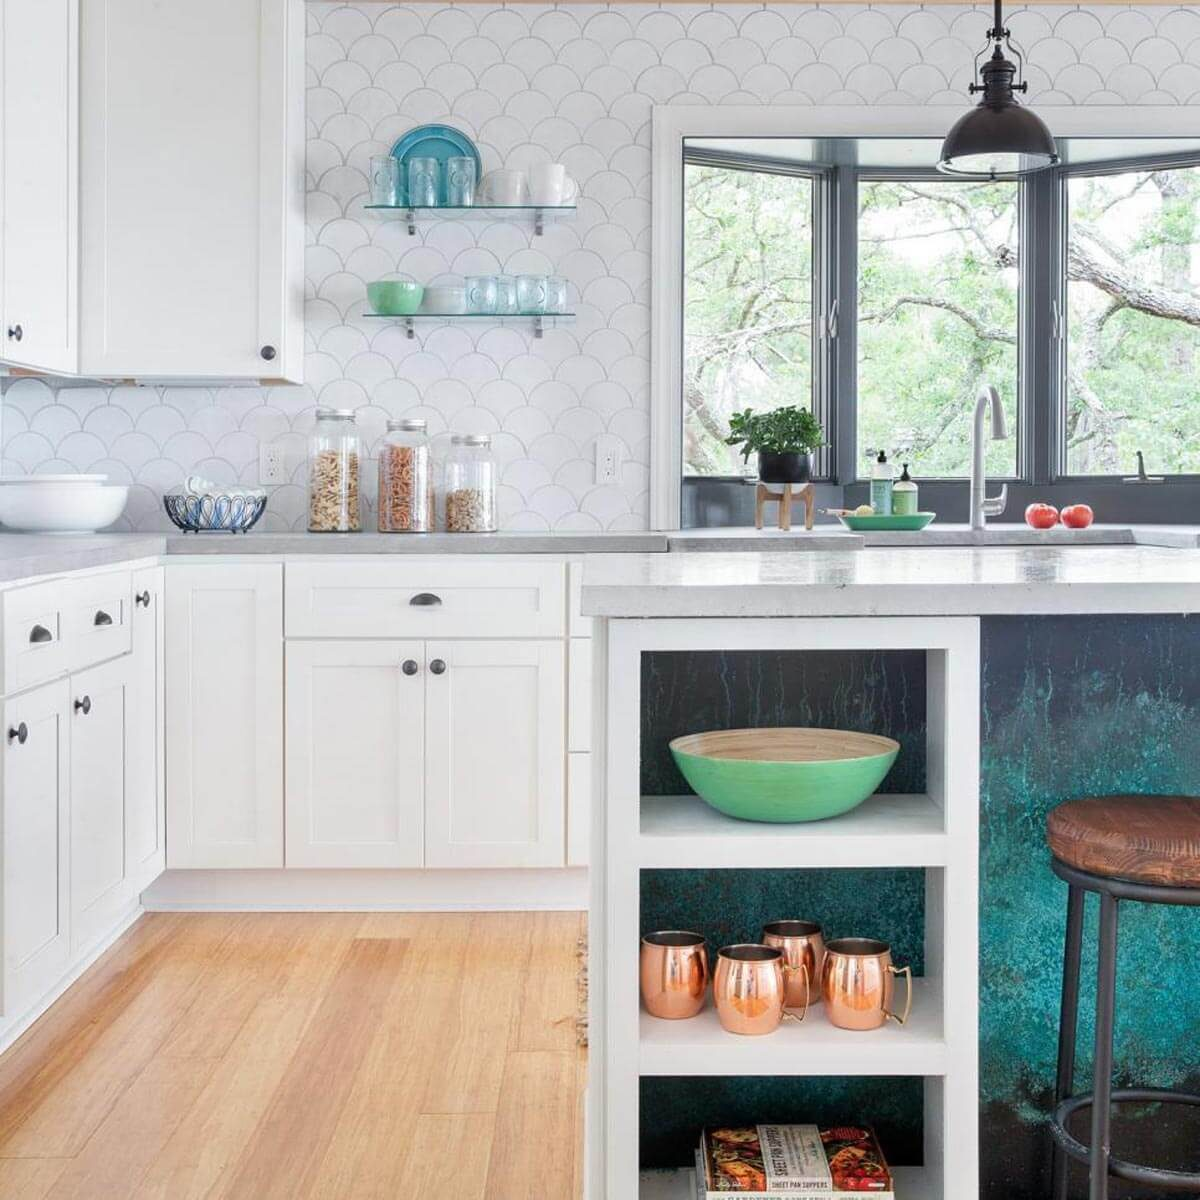 30 kitchen backsplash ideas taste of home - Kitchen tile backsplash design ideas ...